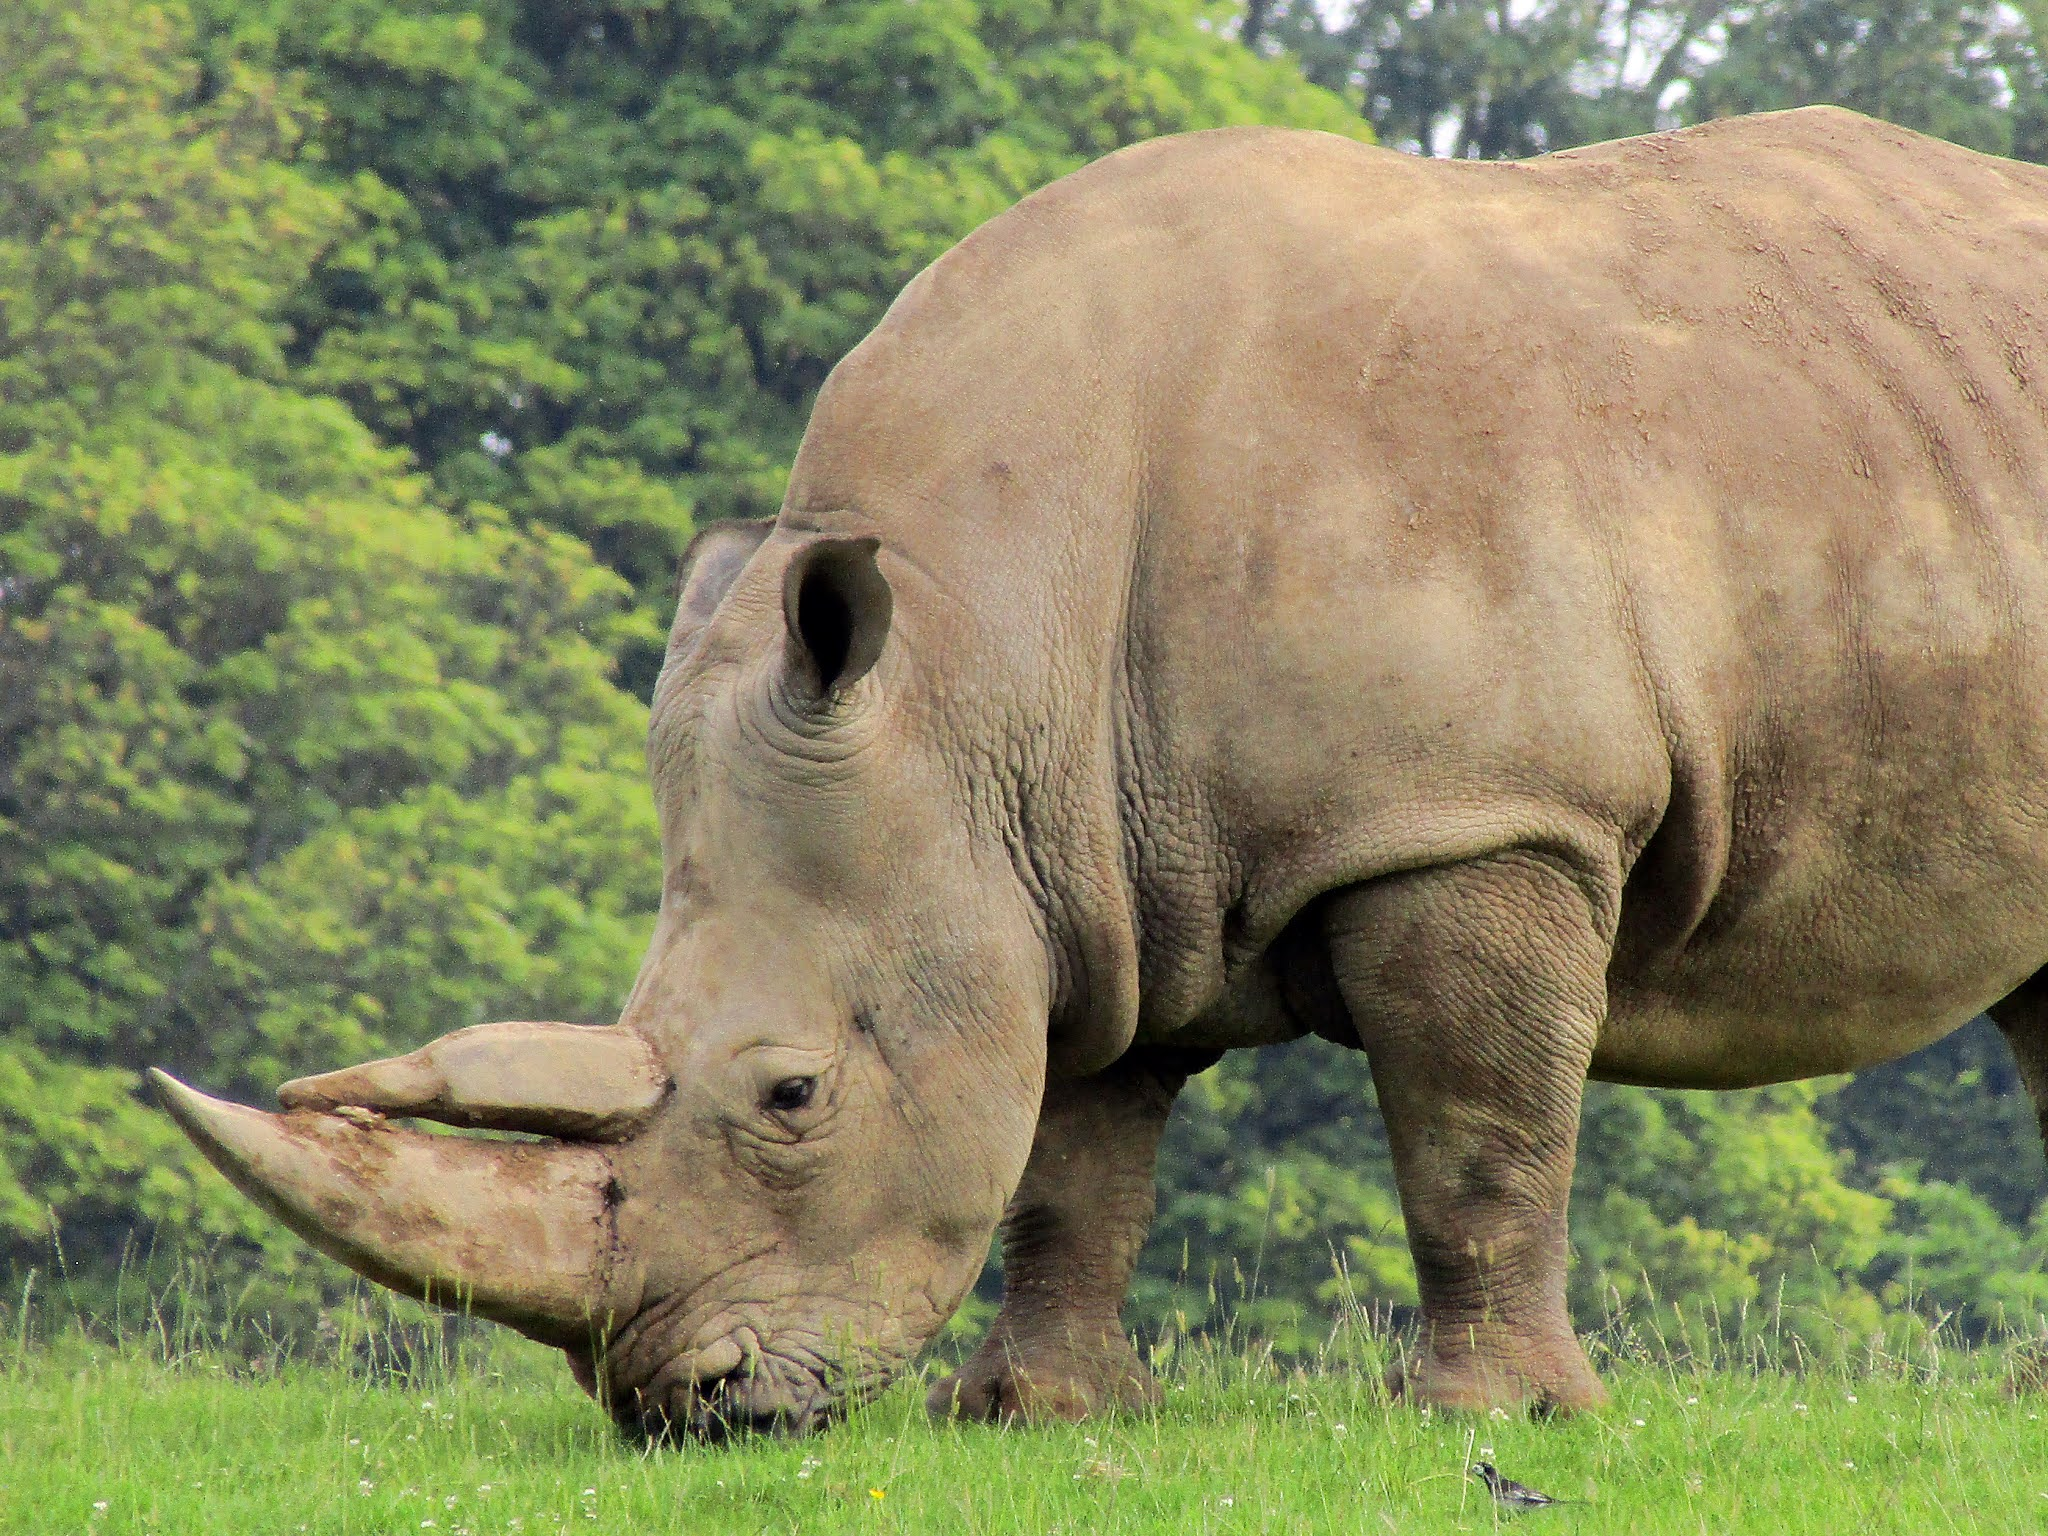 A photo of a white rhino grazing at Whipsnade Zoo.